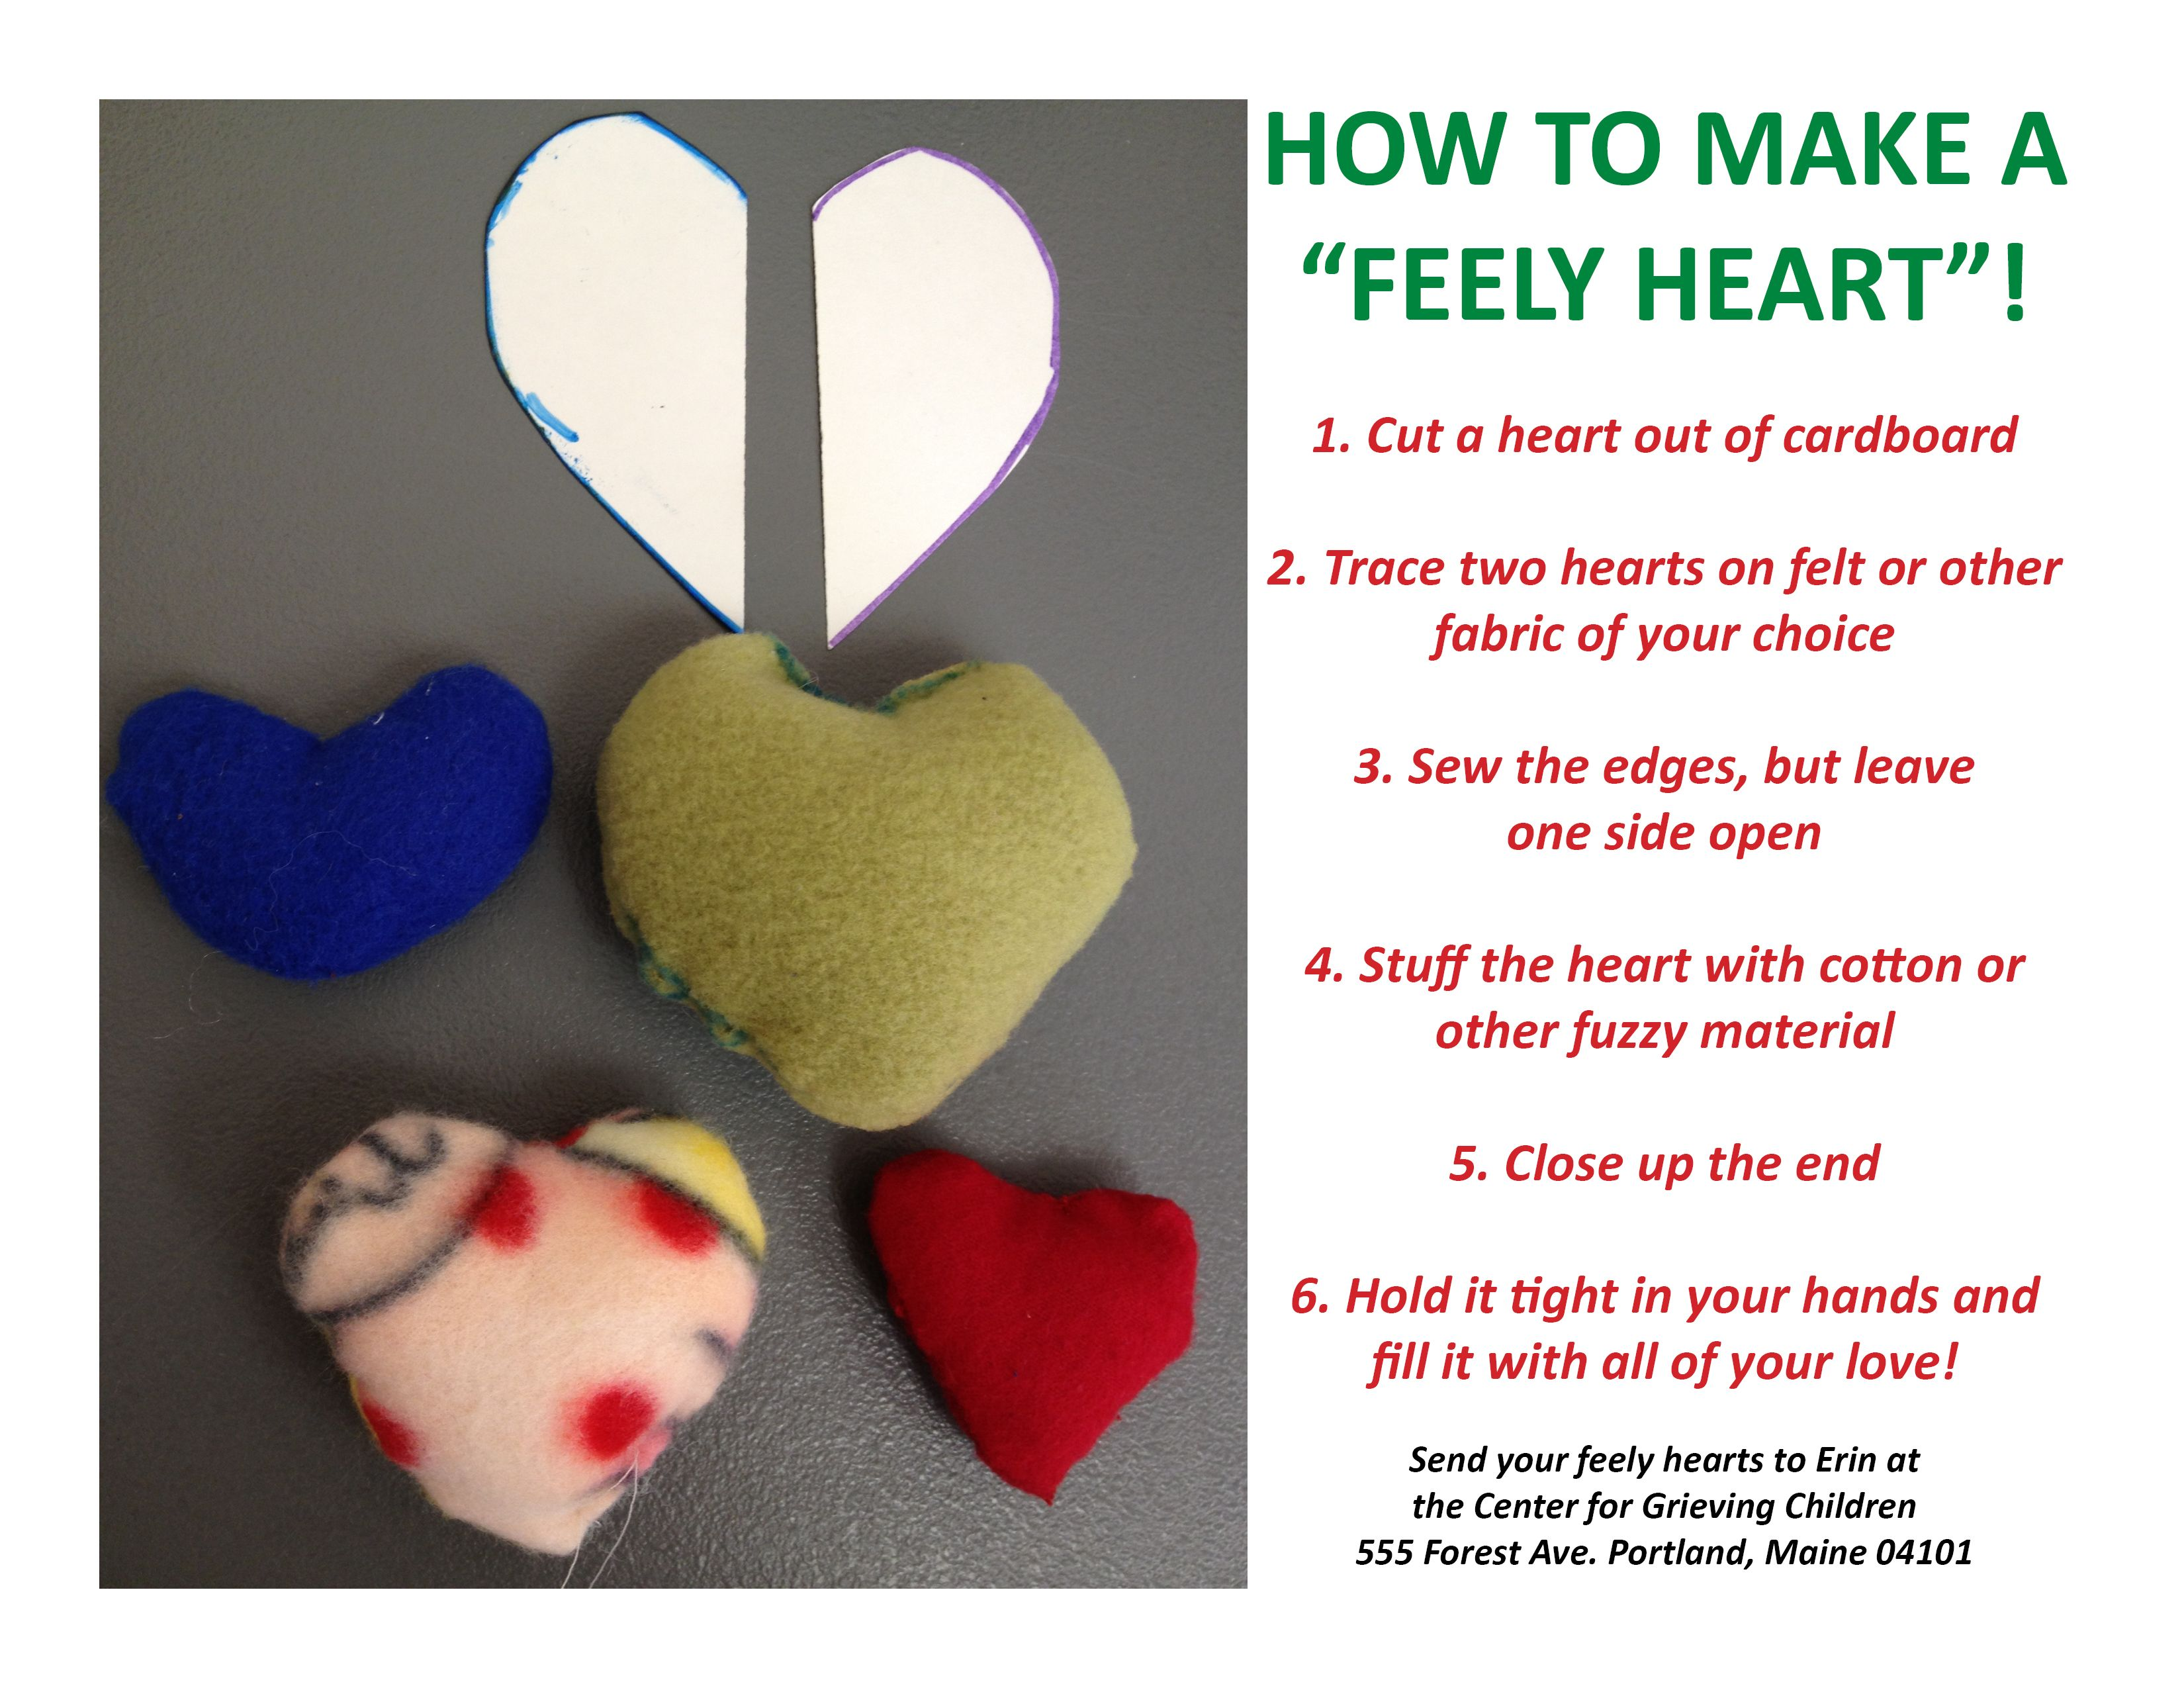 Diy How To Make A Feely Heart At The Center For Grieving